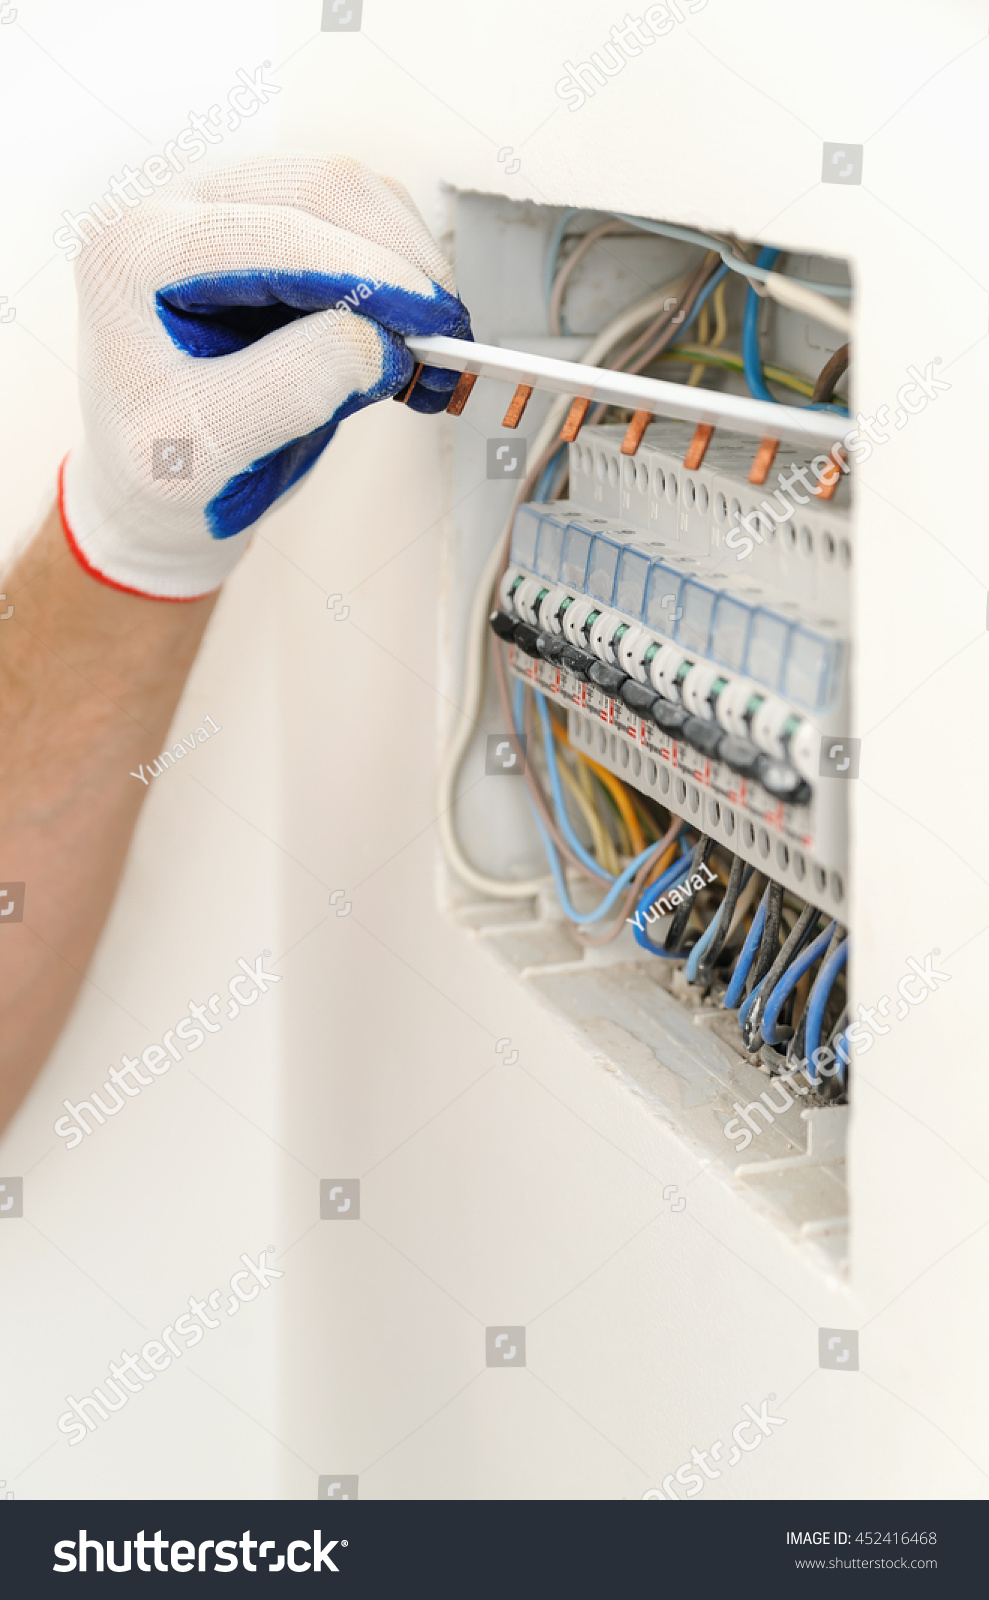 Fantastic Boiler Diagram Thick Pit Bike Wiring Rectangular Hss Wiring How To Wire Guitar Pickups Young Wiring Diagram For Gas Furnace BlackCar Alarm Installation Instructions Electrician Installing Electrical Fuse Box House Stock Photo ..